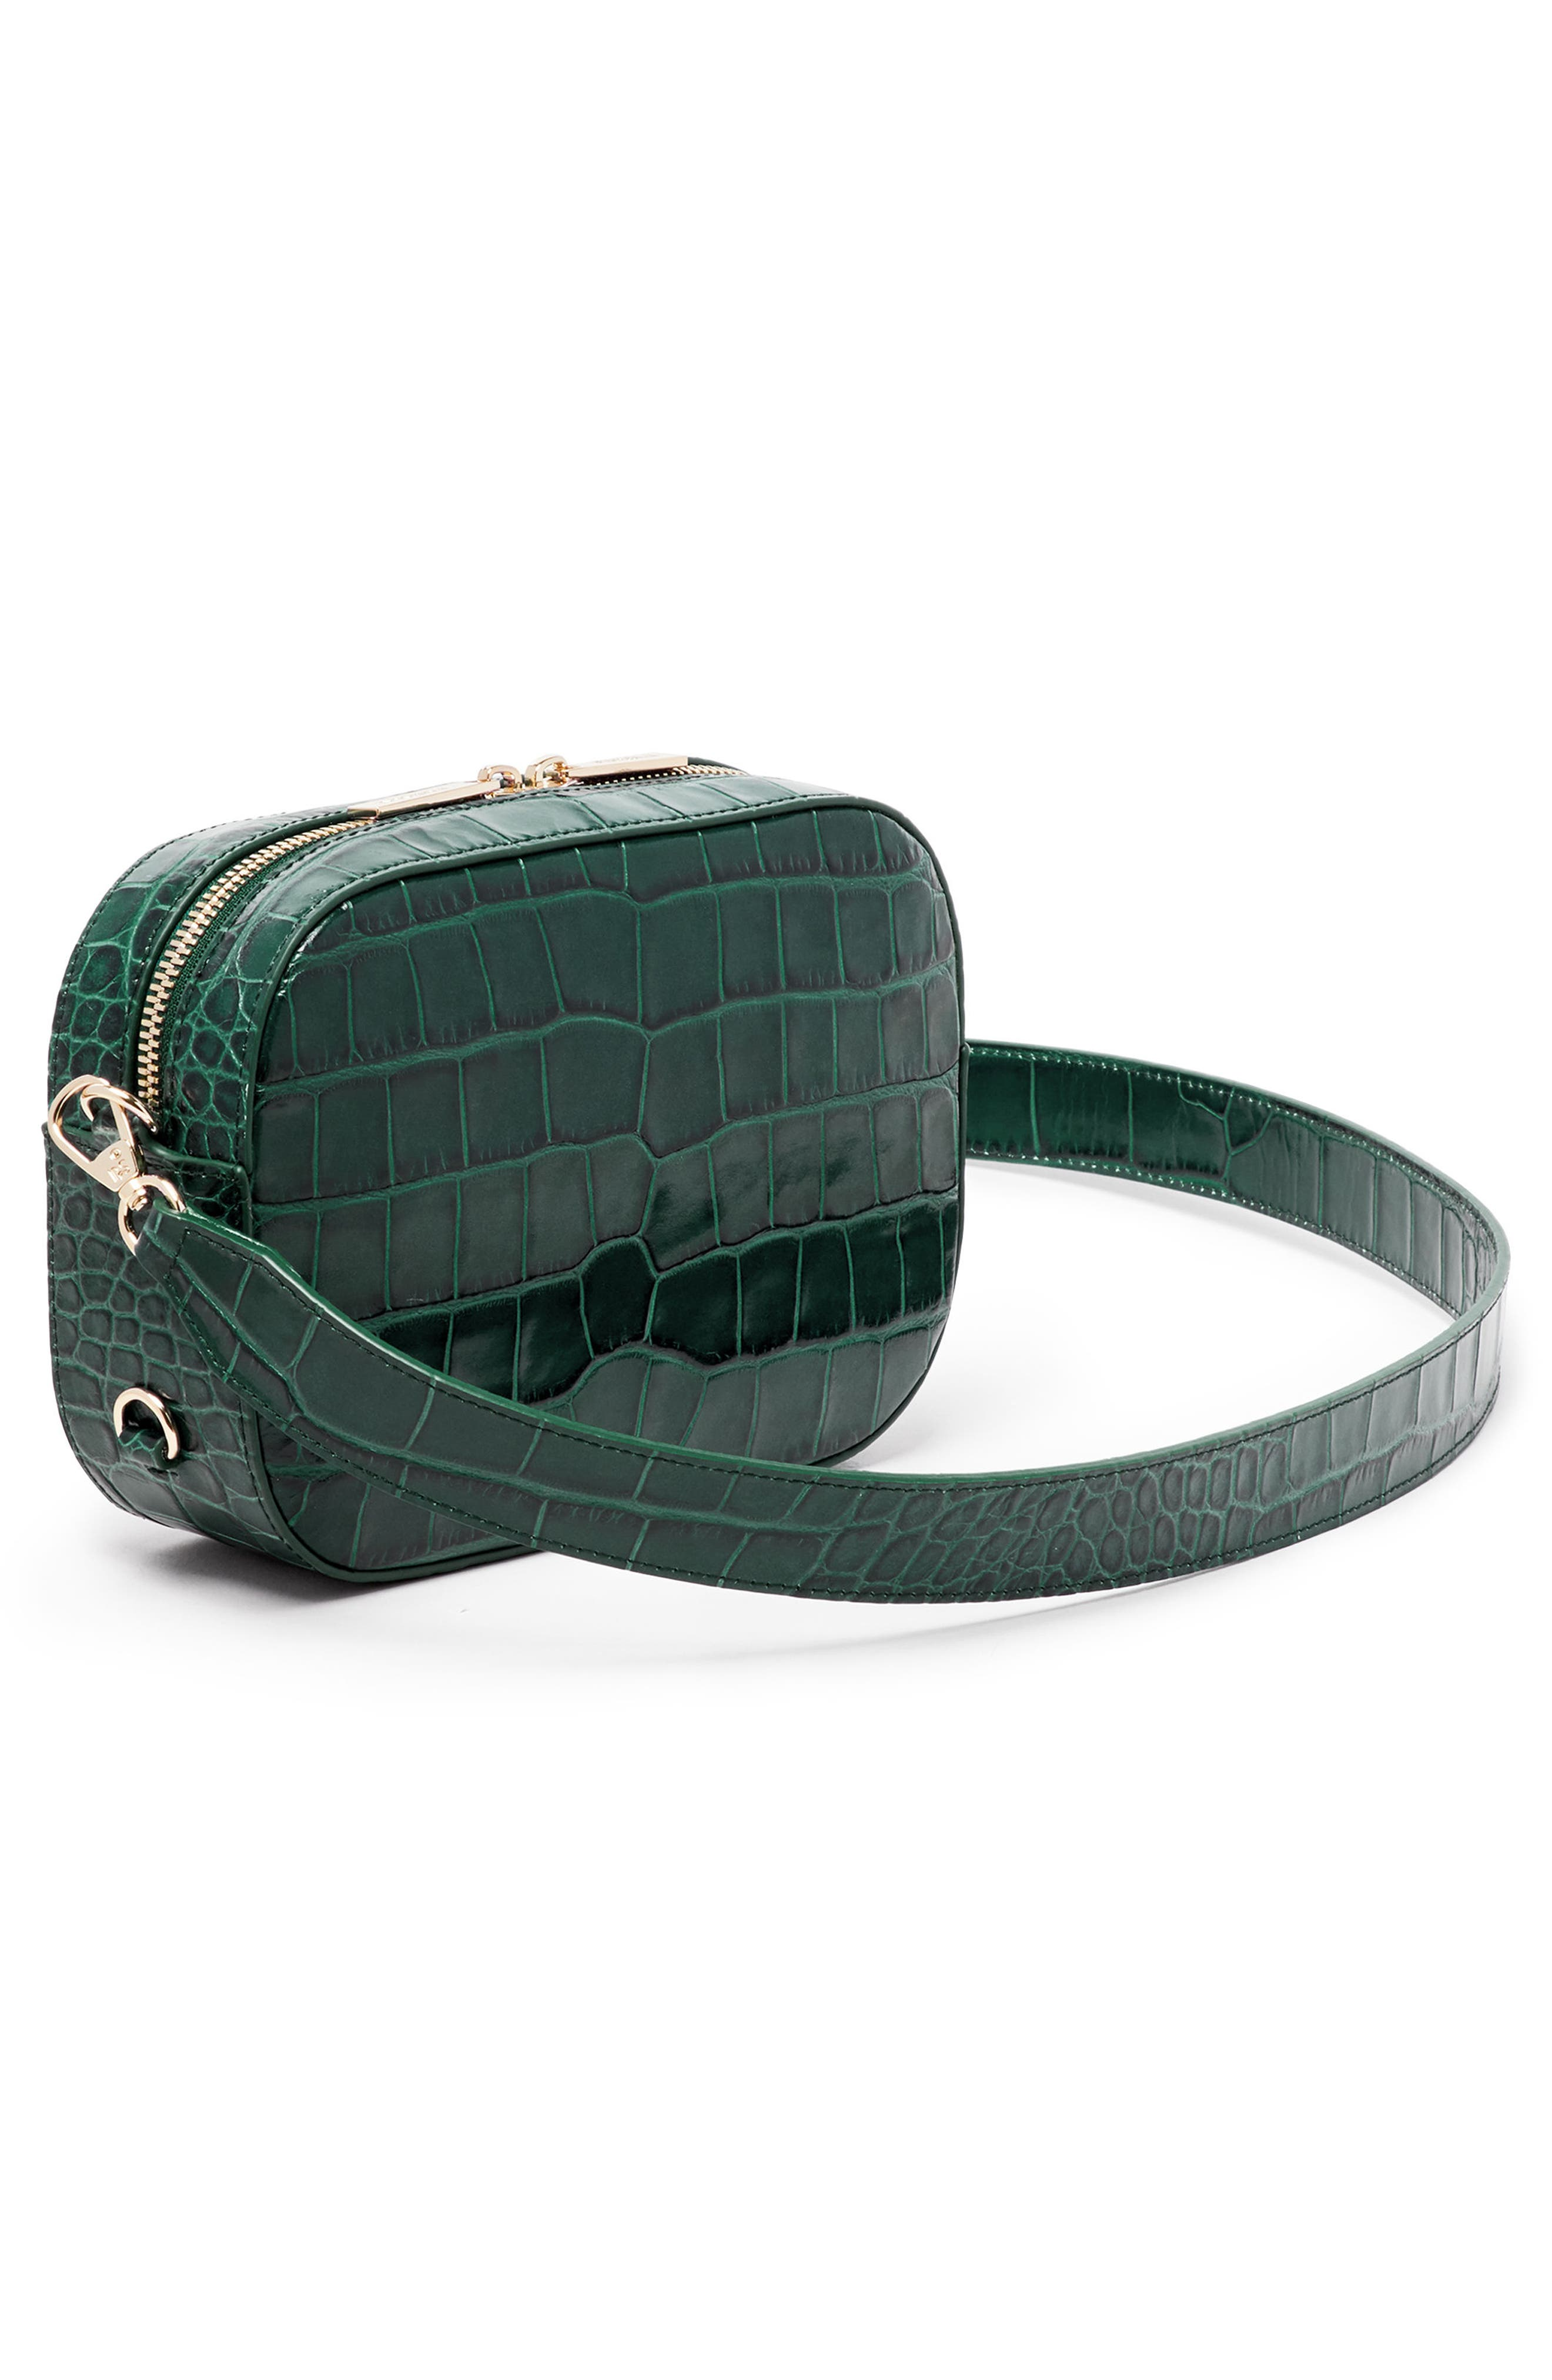 Croc Embossed Bigger Leather Camera Bag,                             Alternate thumbnail 2, color,                             300